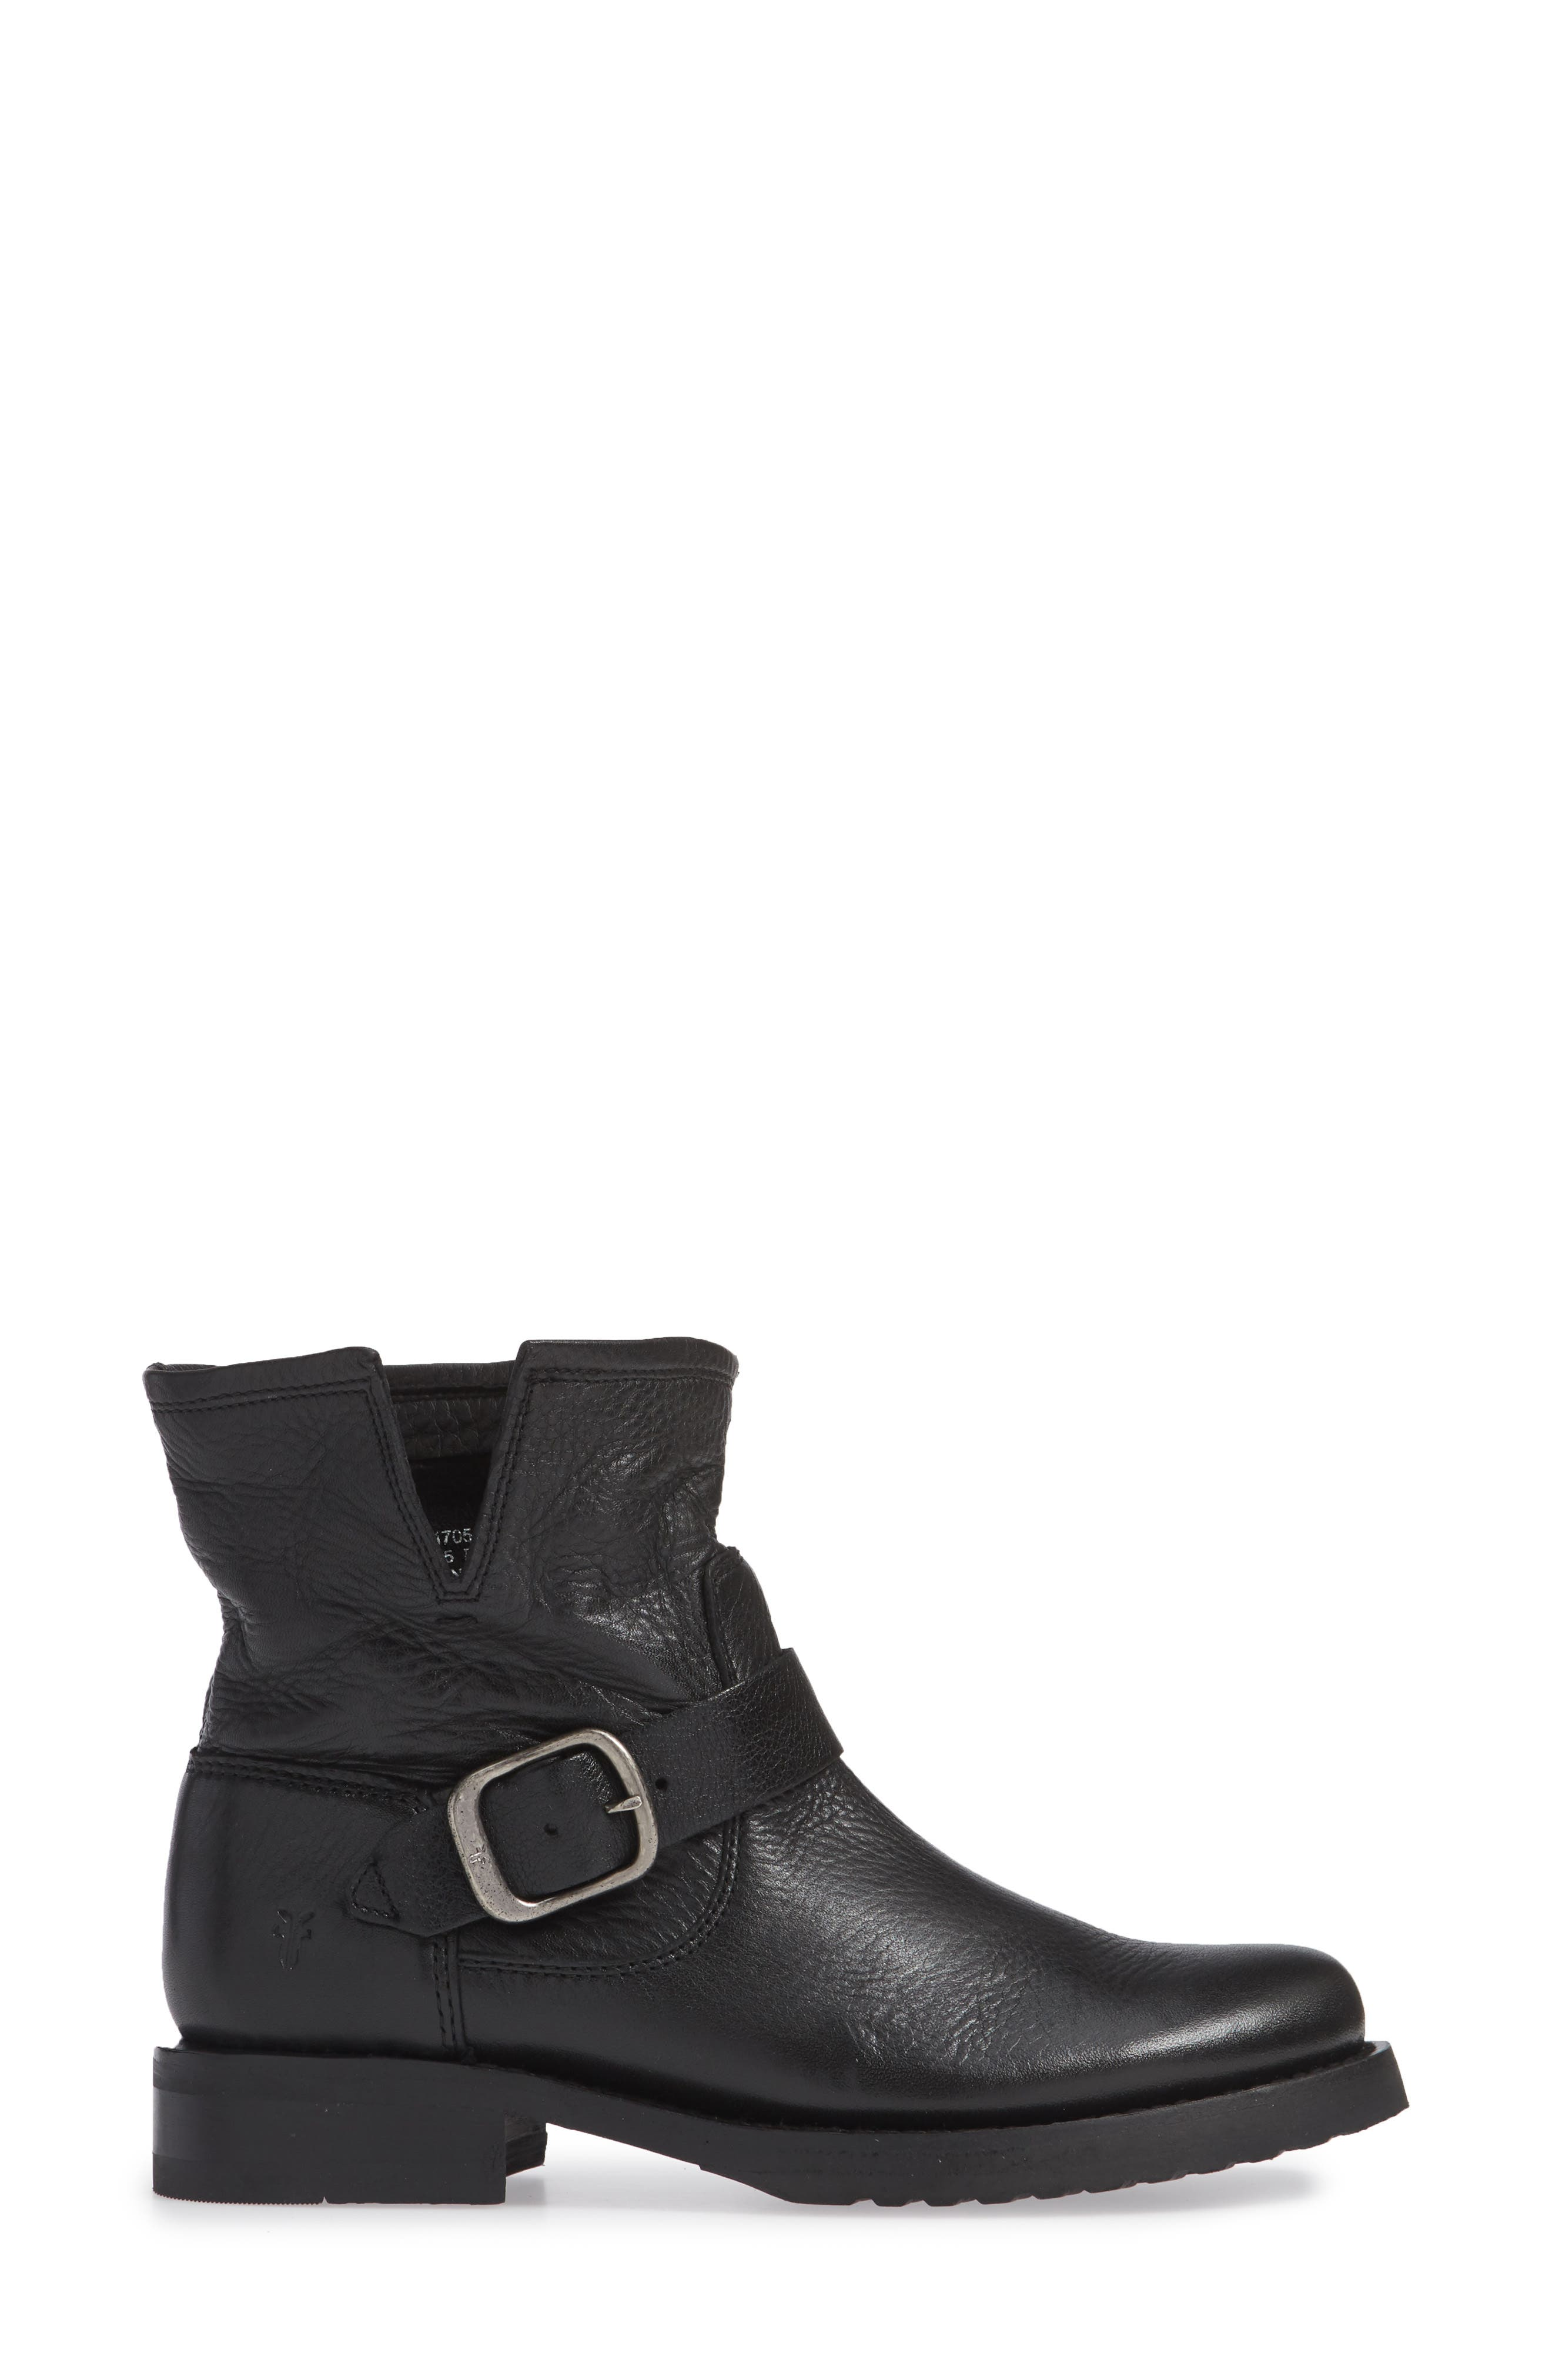 FRYE, Veronica Bootie, Alternate thumbnail 3, color, BLACK LEATHER